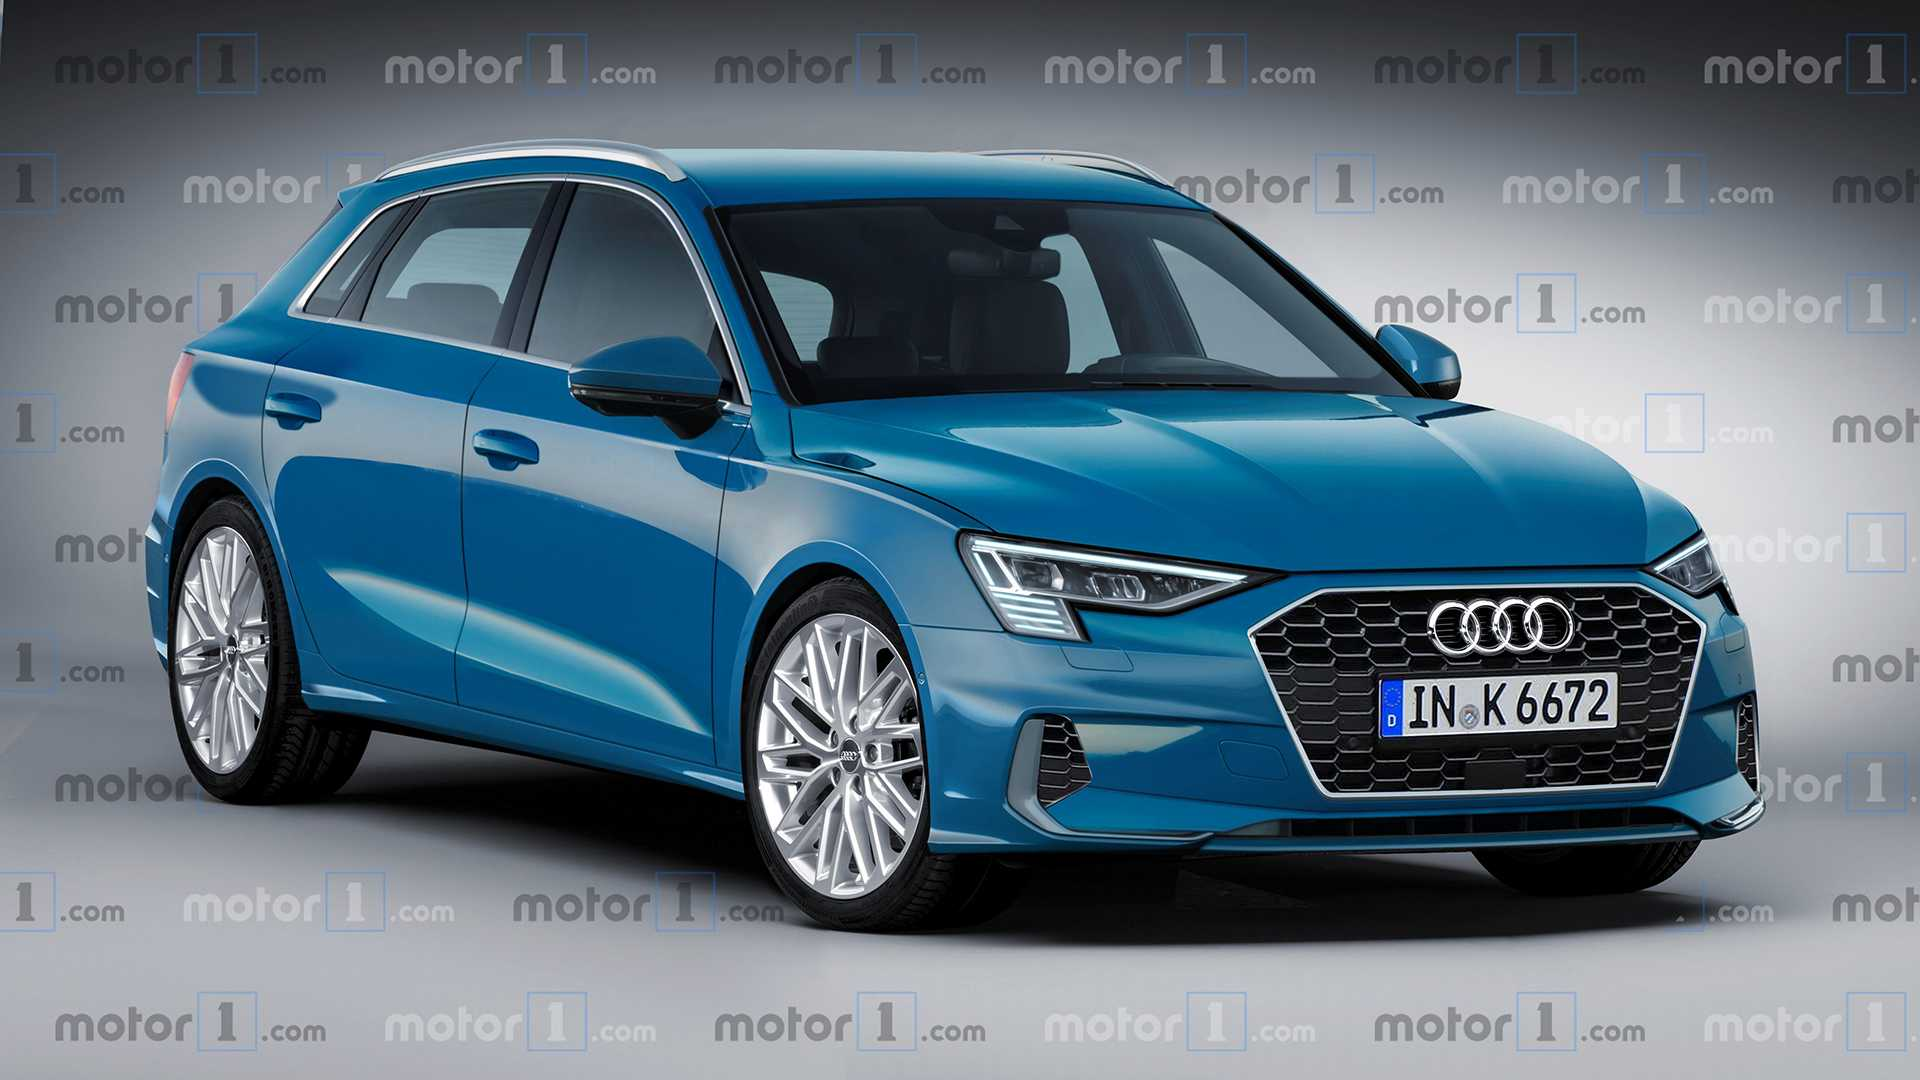 23 Concept of 2020 Audi A3 Ratings with 2020 Audi A3